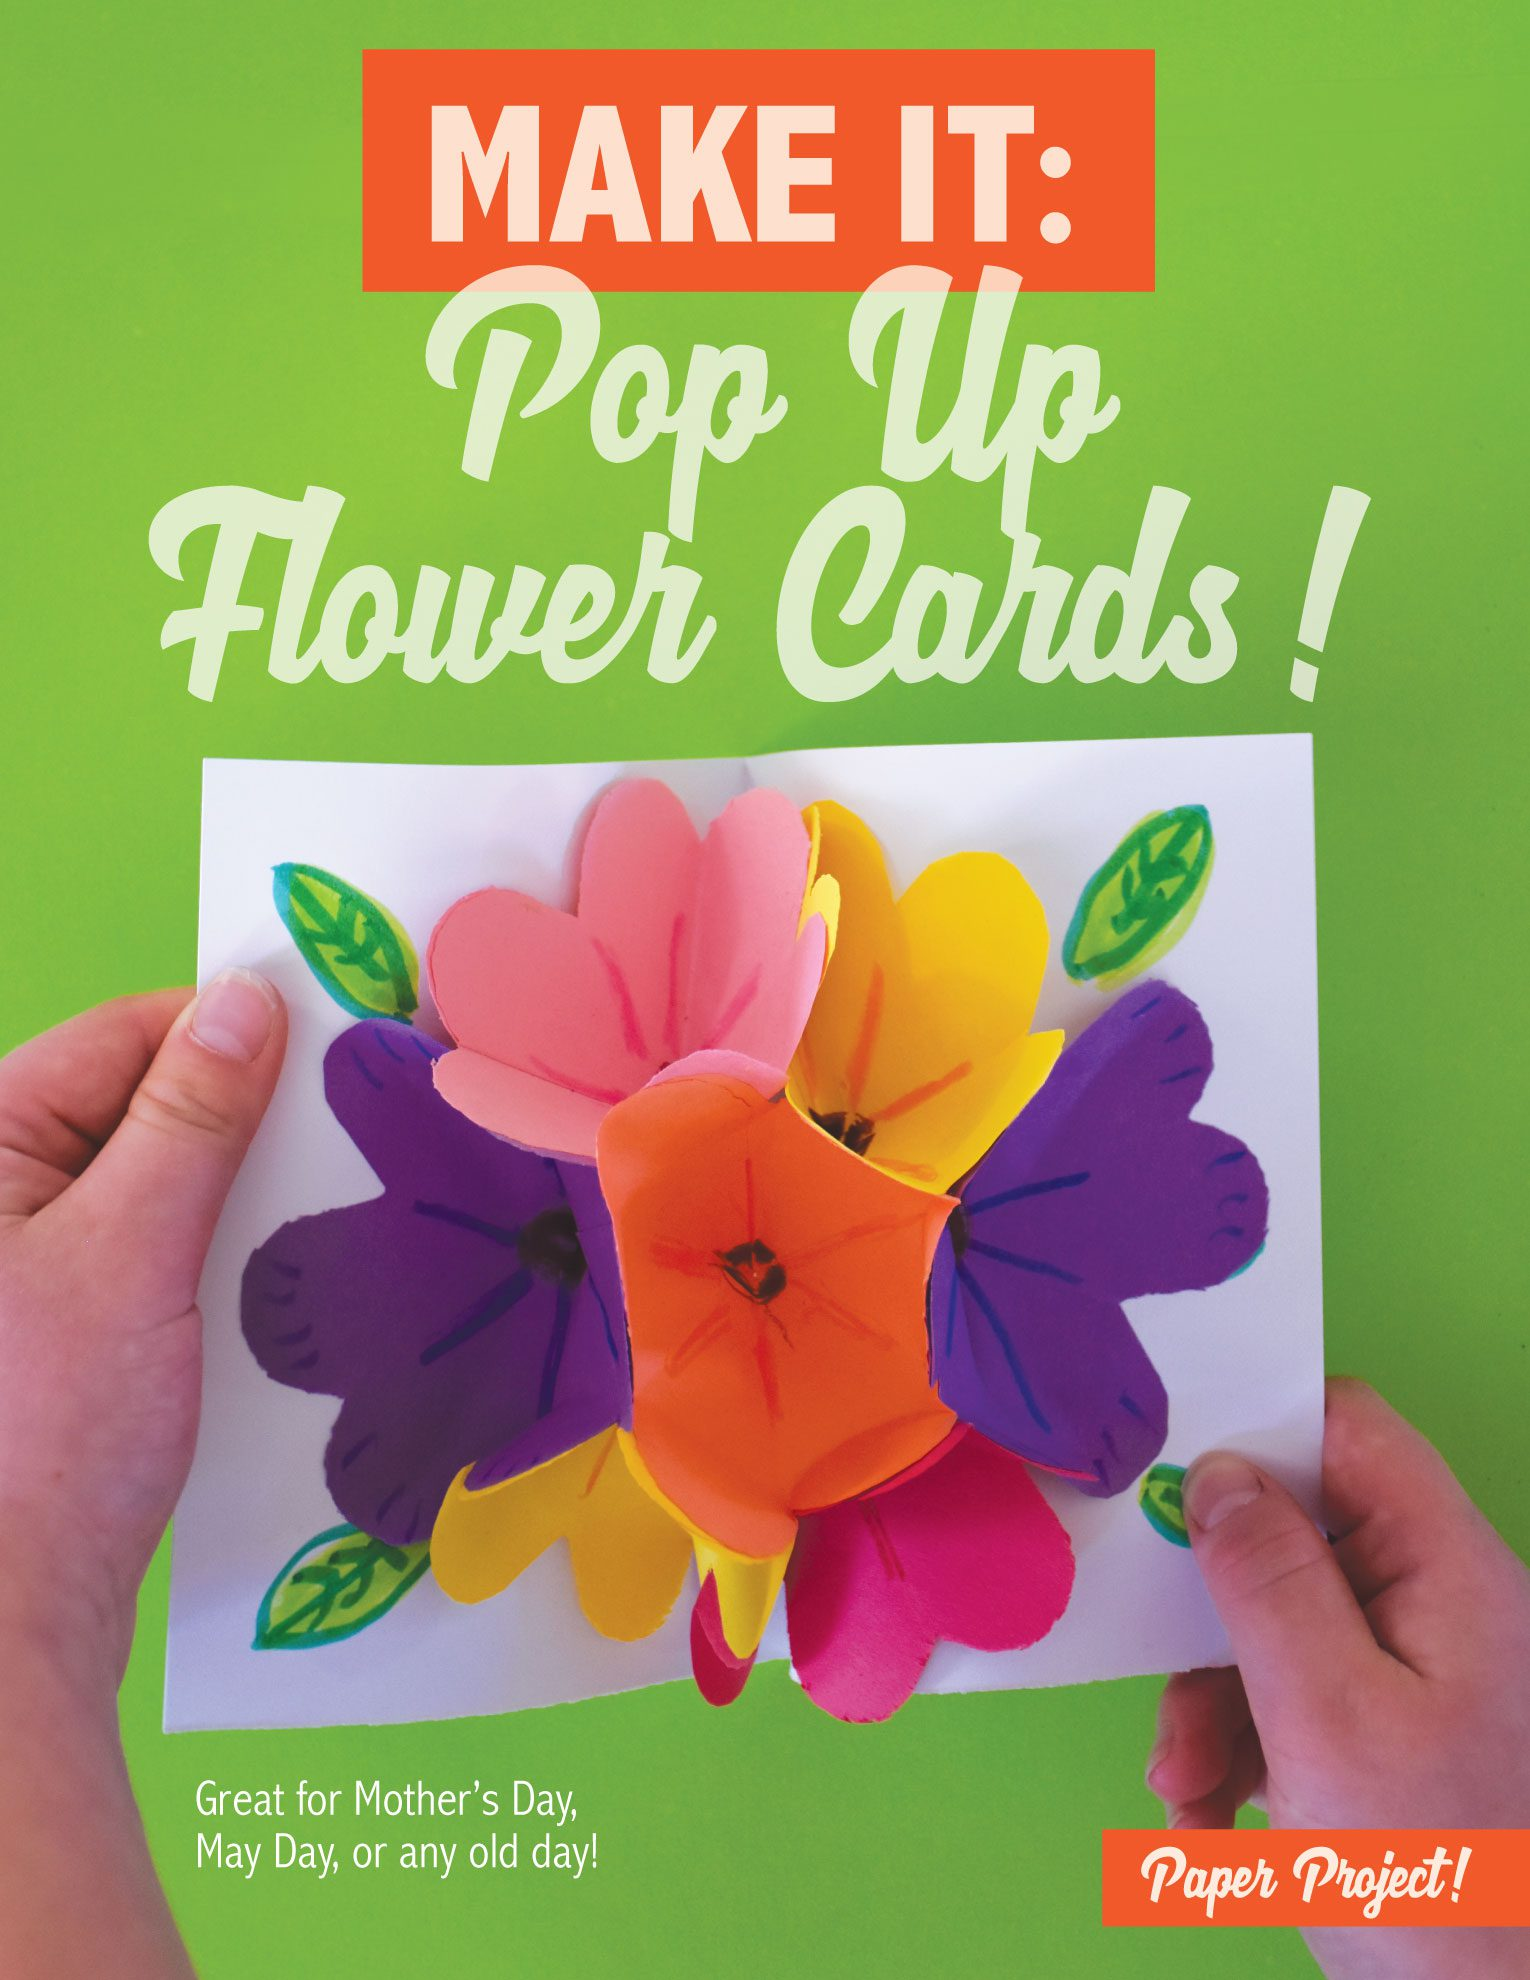 Learn how to make pop-up paper flower cards!